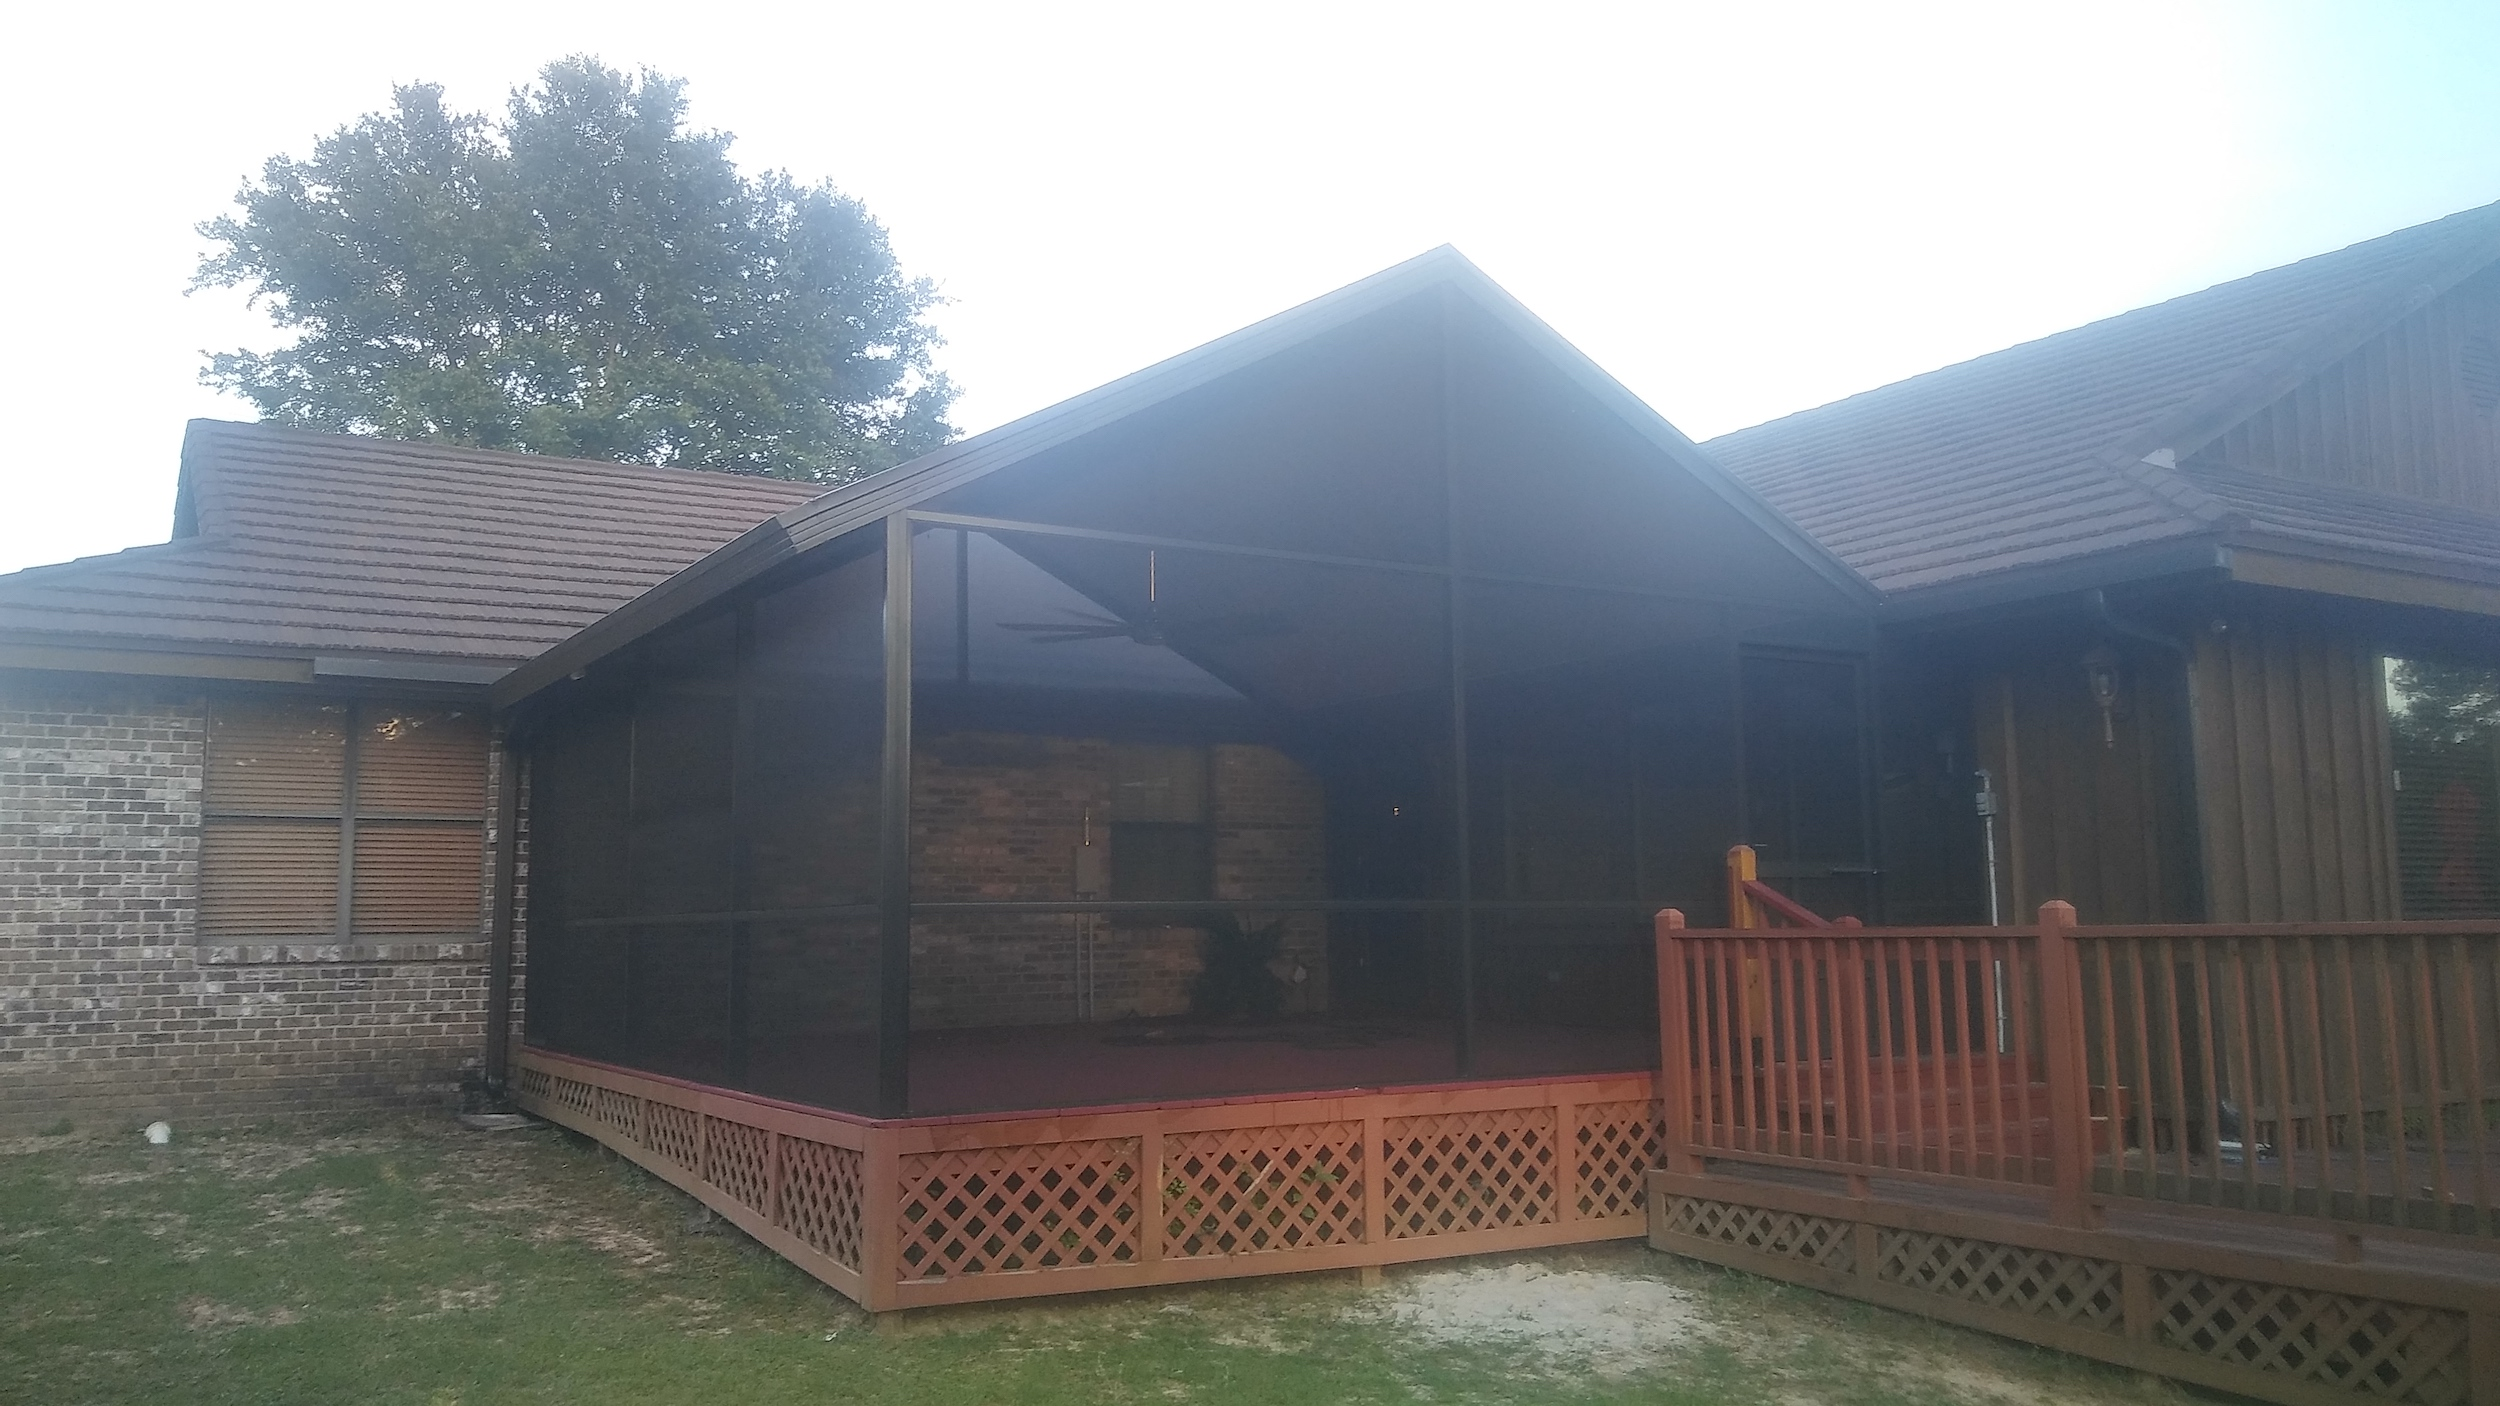 Adding an aluminum screen enclosure to a porch or deck creates a new outdoor living space, affordably.